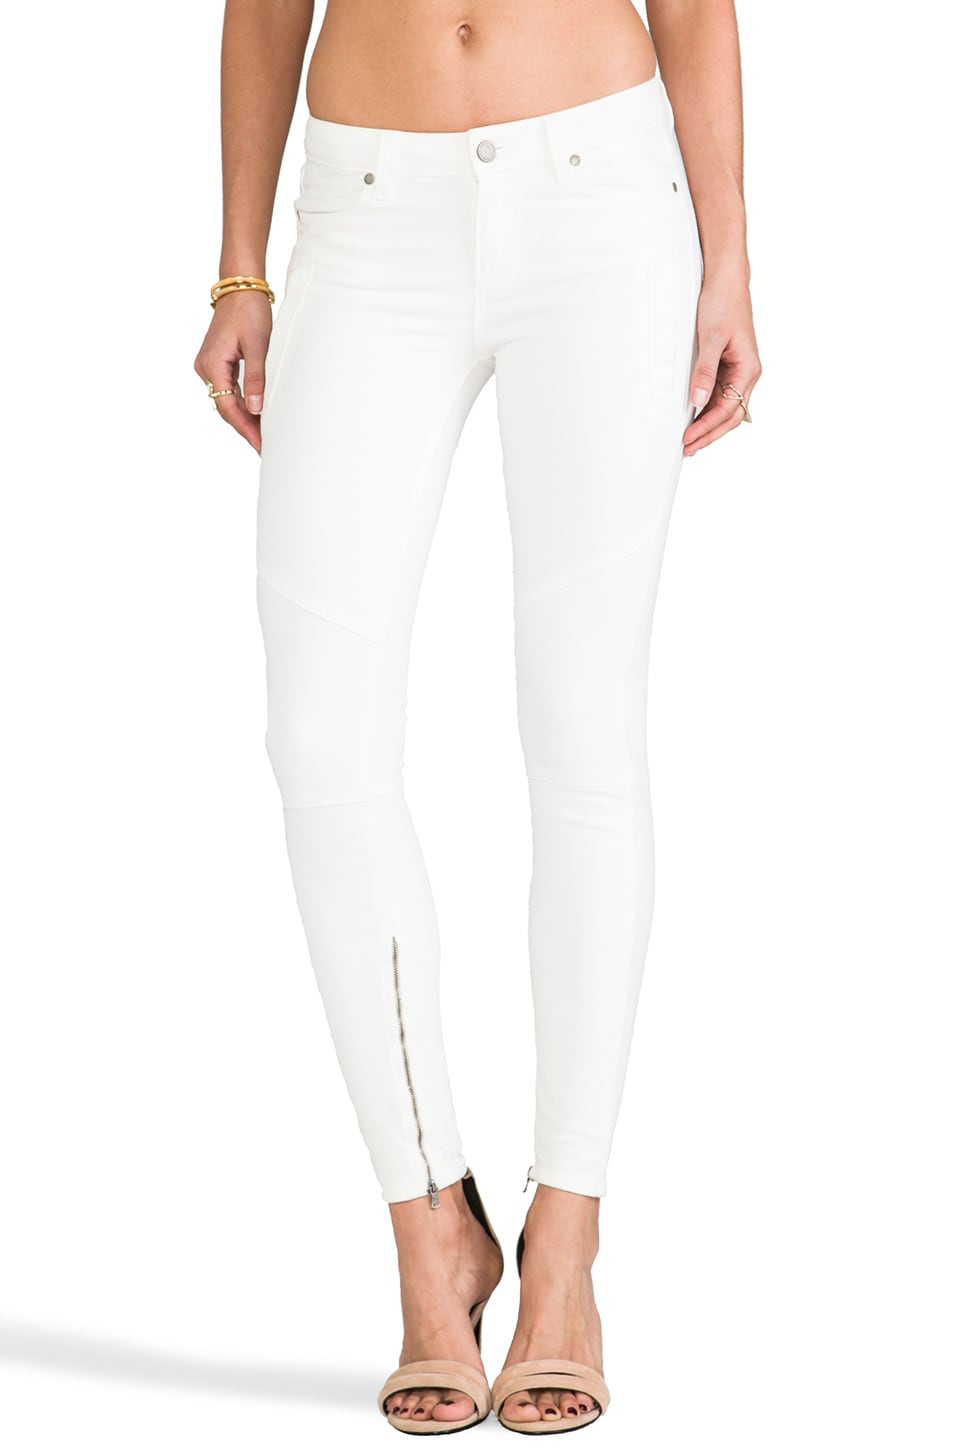 Paige Denim Marley Pant in Vanilla Bean